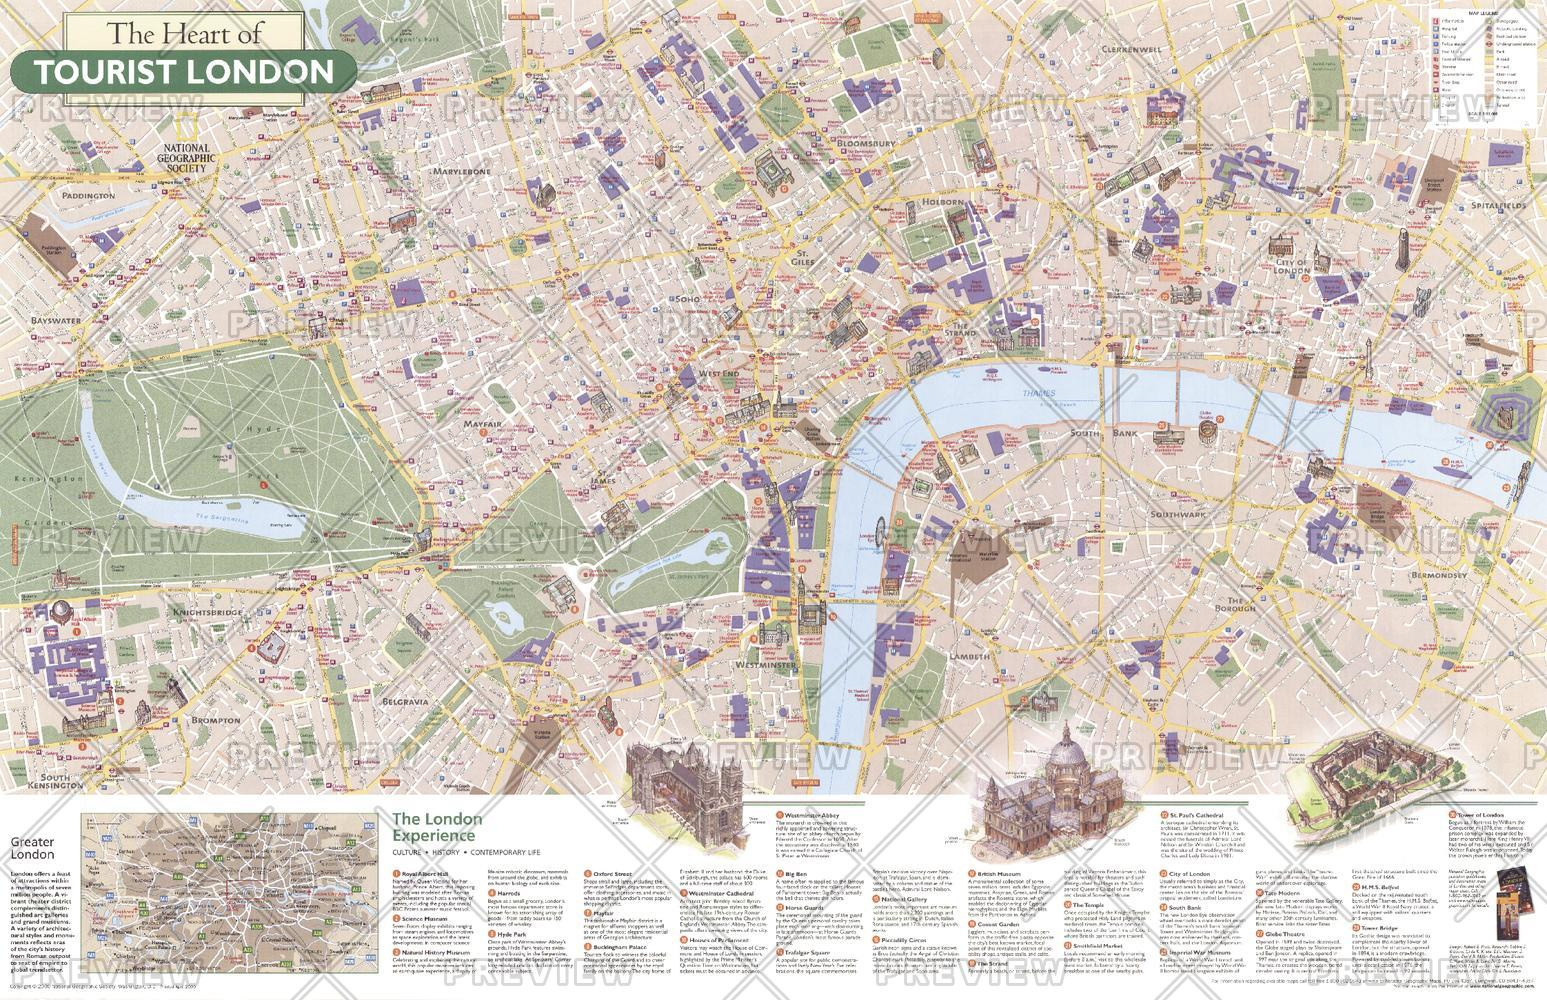 The Heart of Tourist London - Published 2000